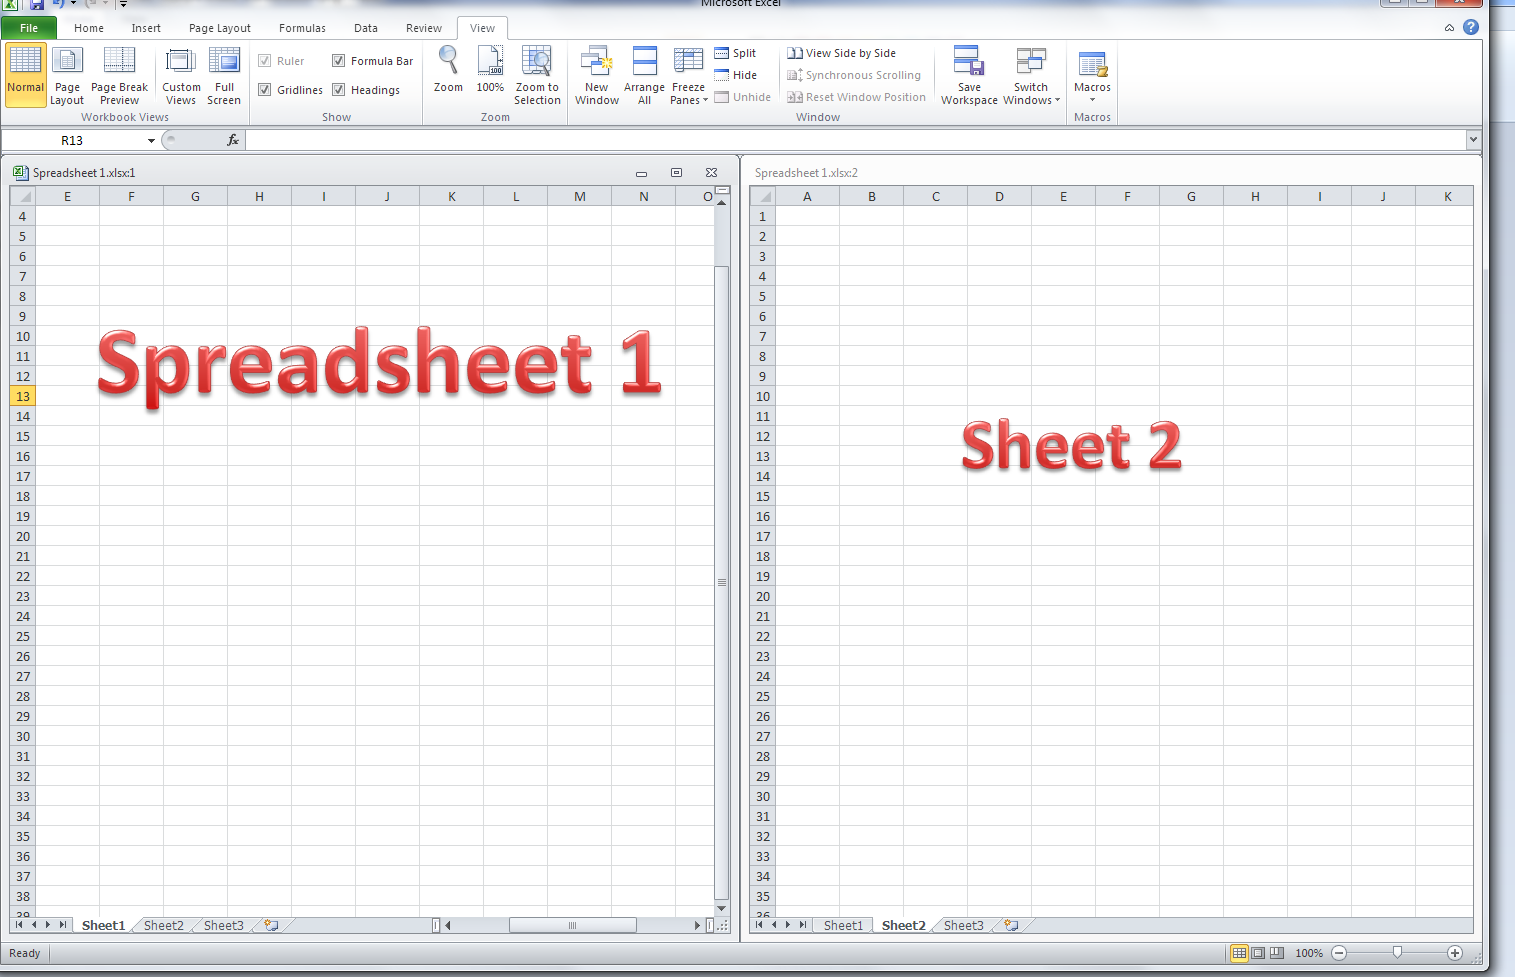 worksheet Insert A New Worksheet In Excel how do i view two sheets of an excel workbook at the same time 17 multiple in a workbook